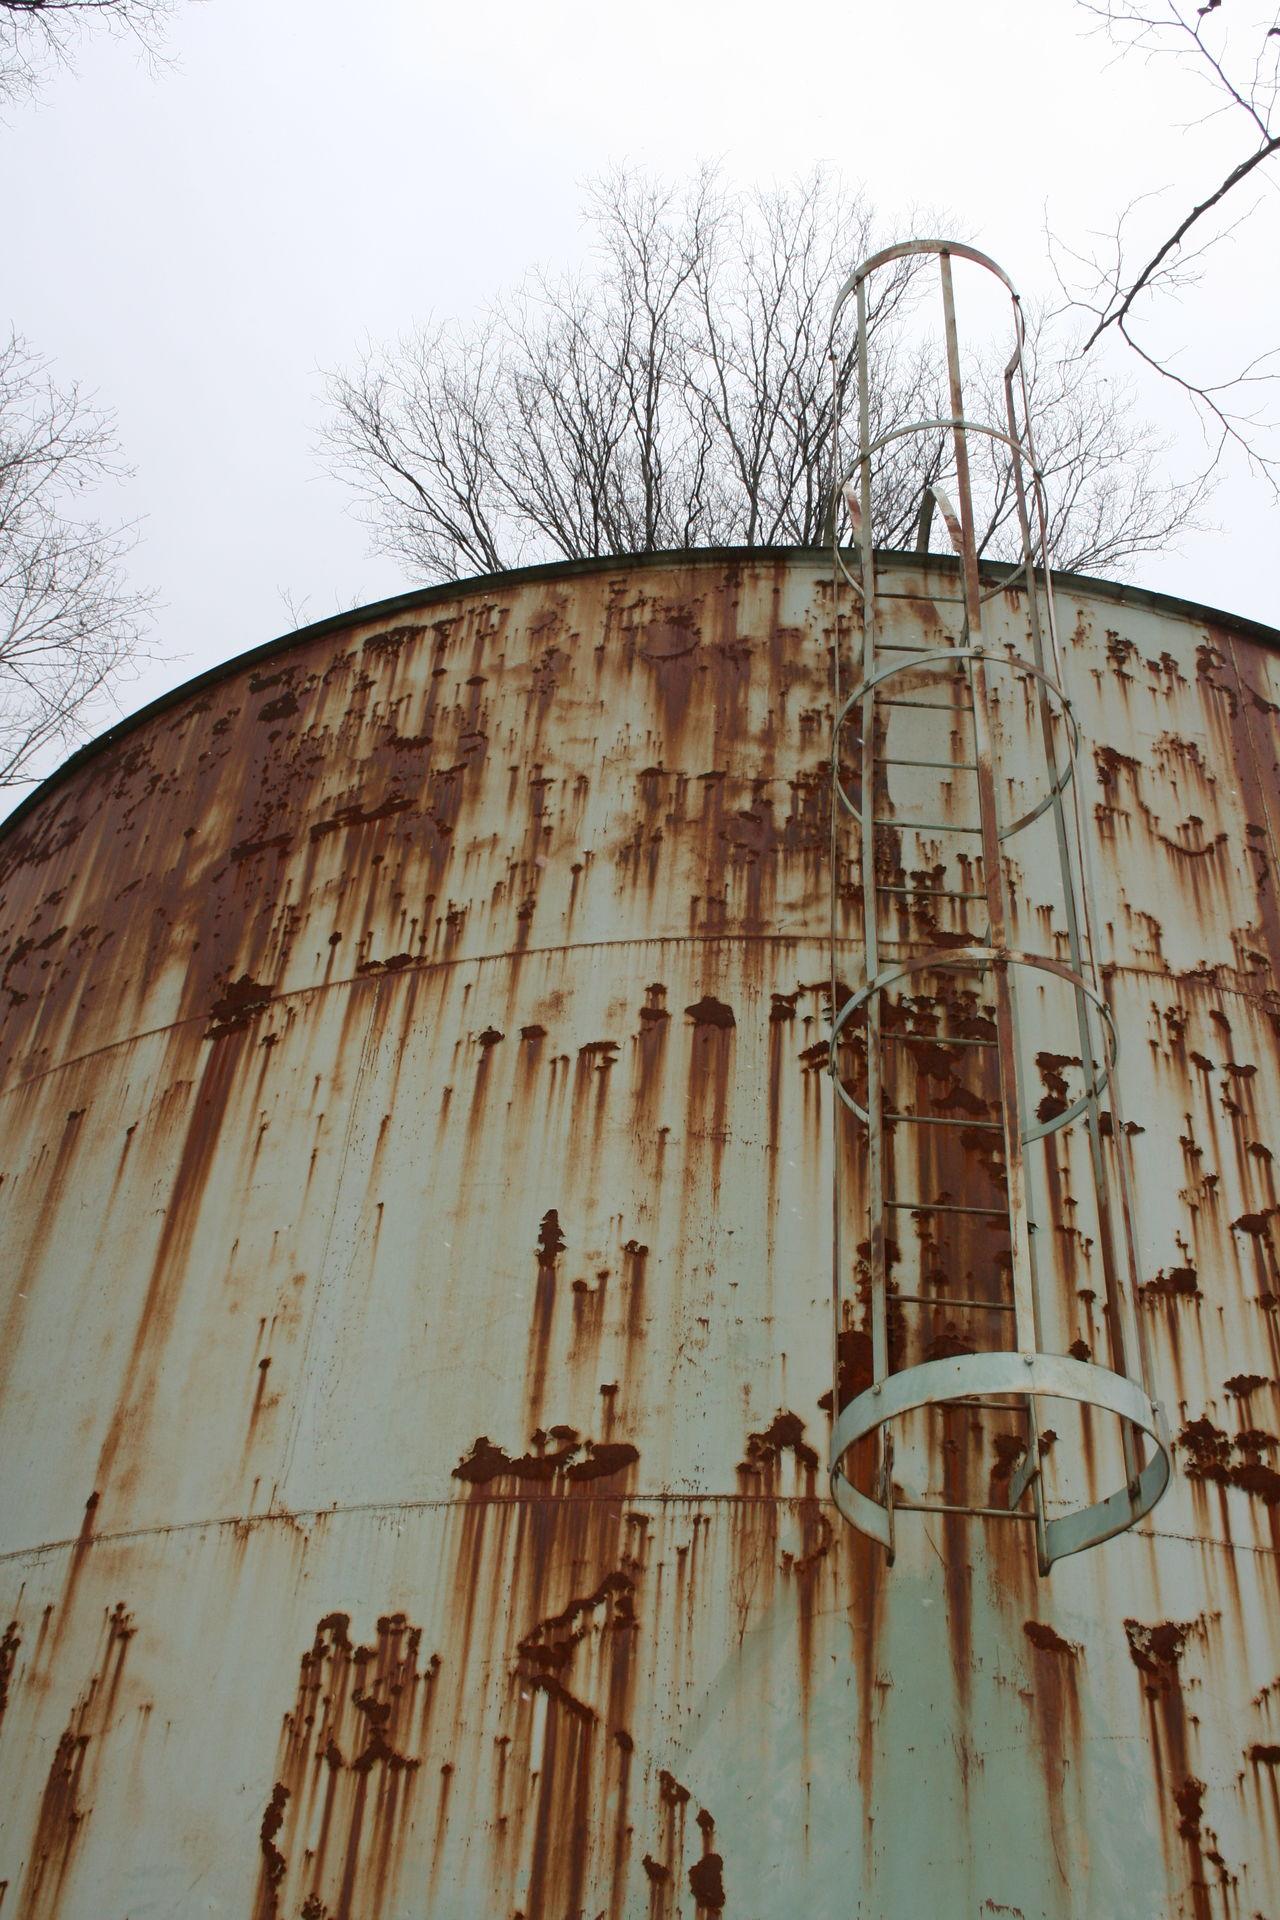 Architecture Bare Tree Building Exterior Built Structure Day Ladder Low Angle View No People Old Outdoors Rusty Sky Water Tank Water Tower Water Tower - Storage Tank Watertank Watertower